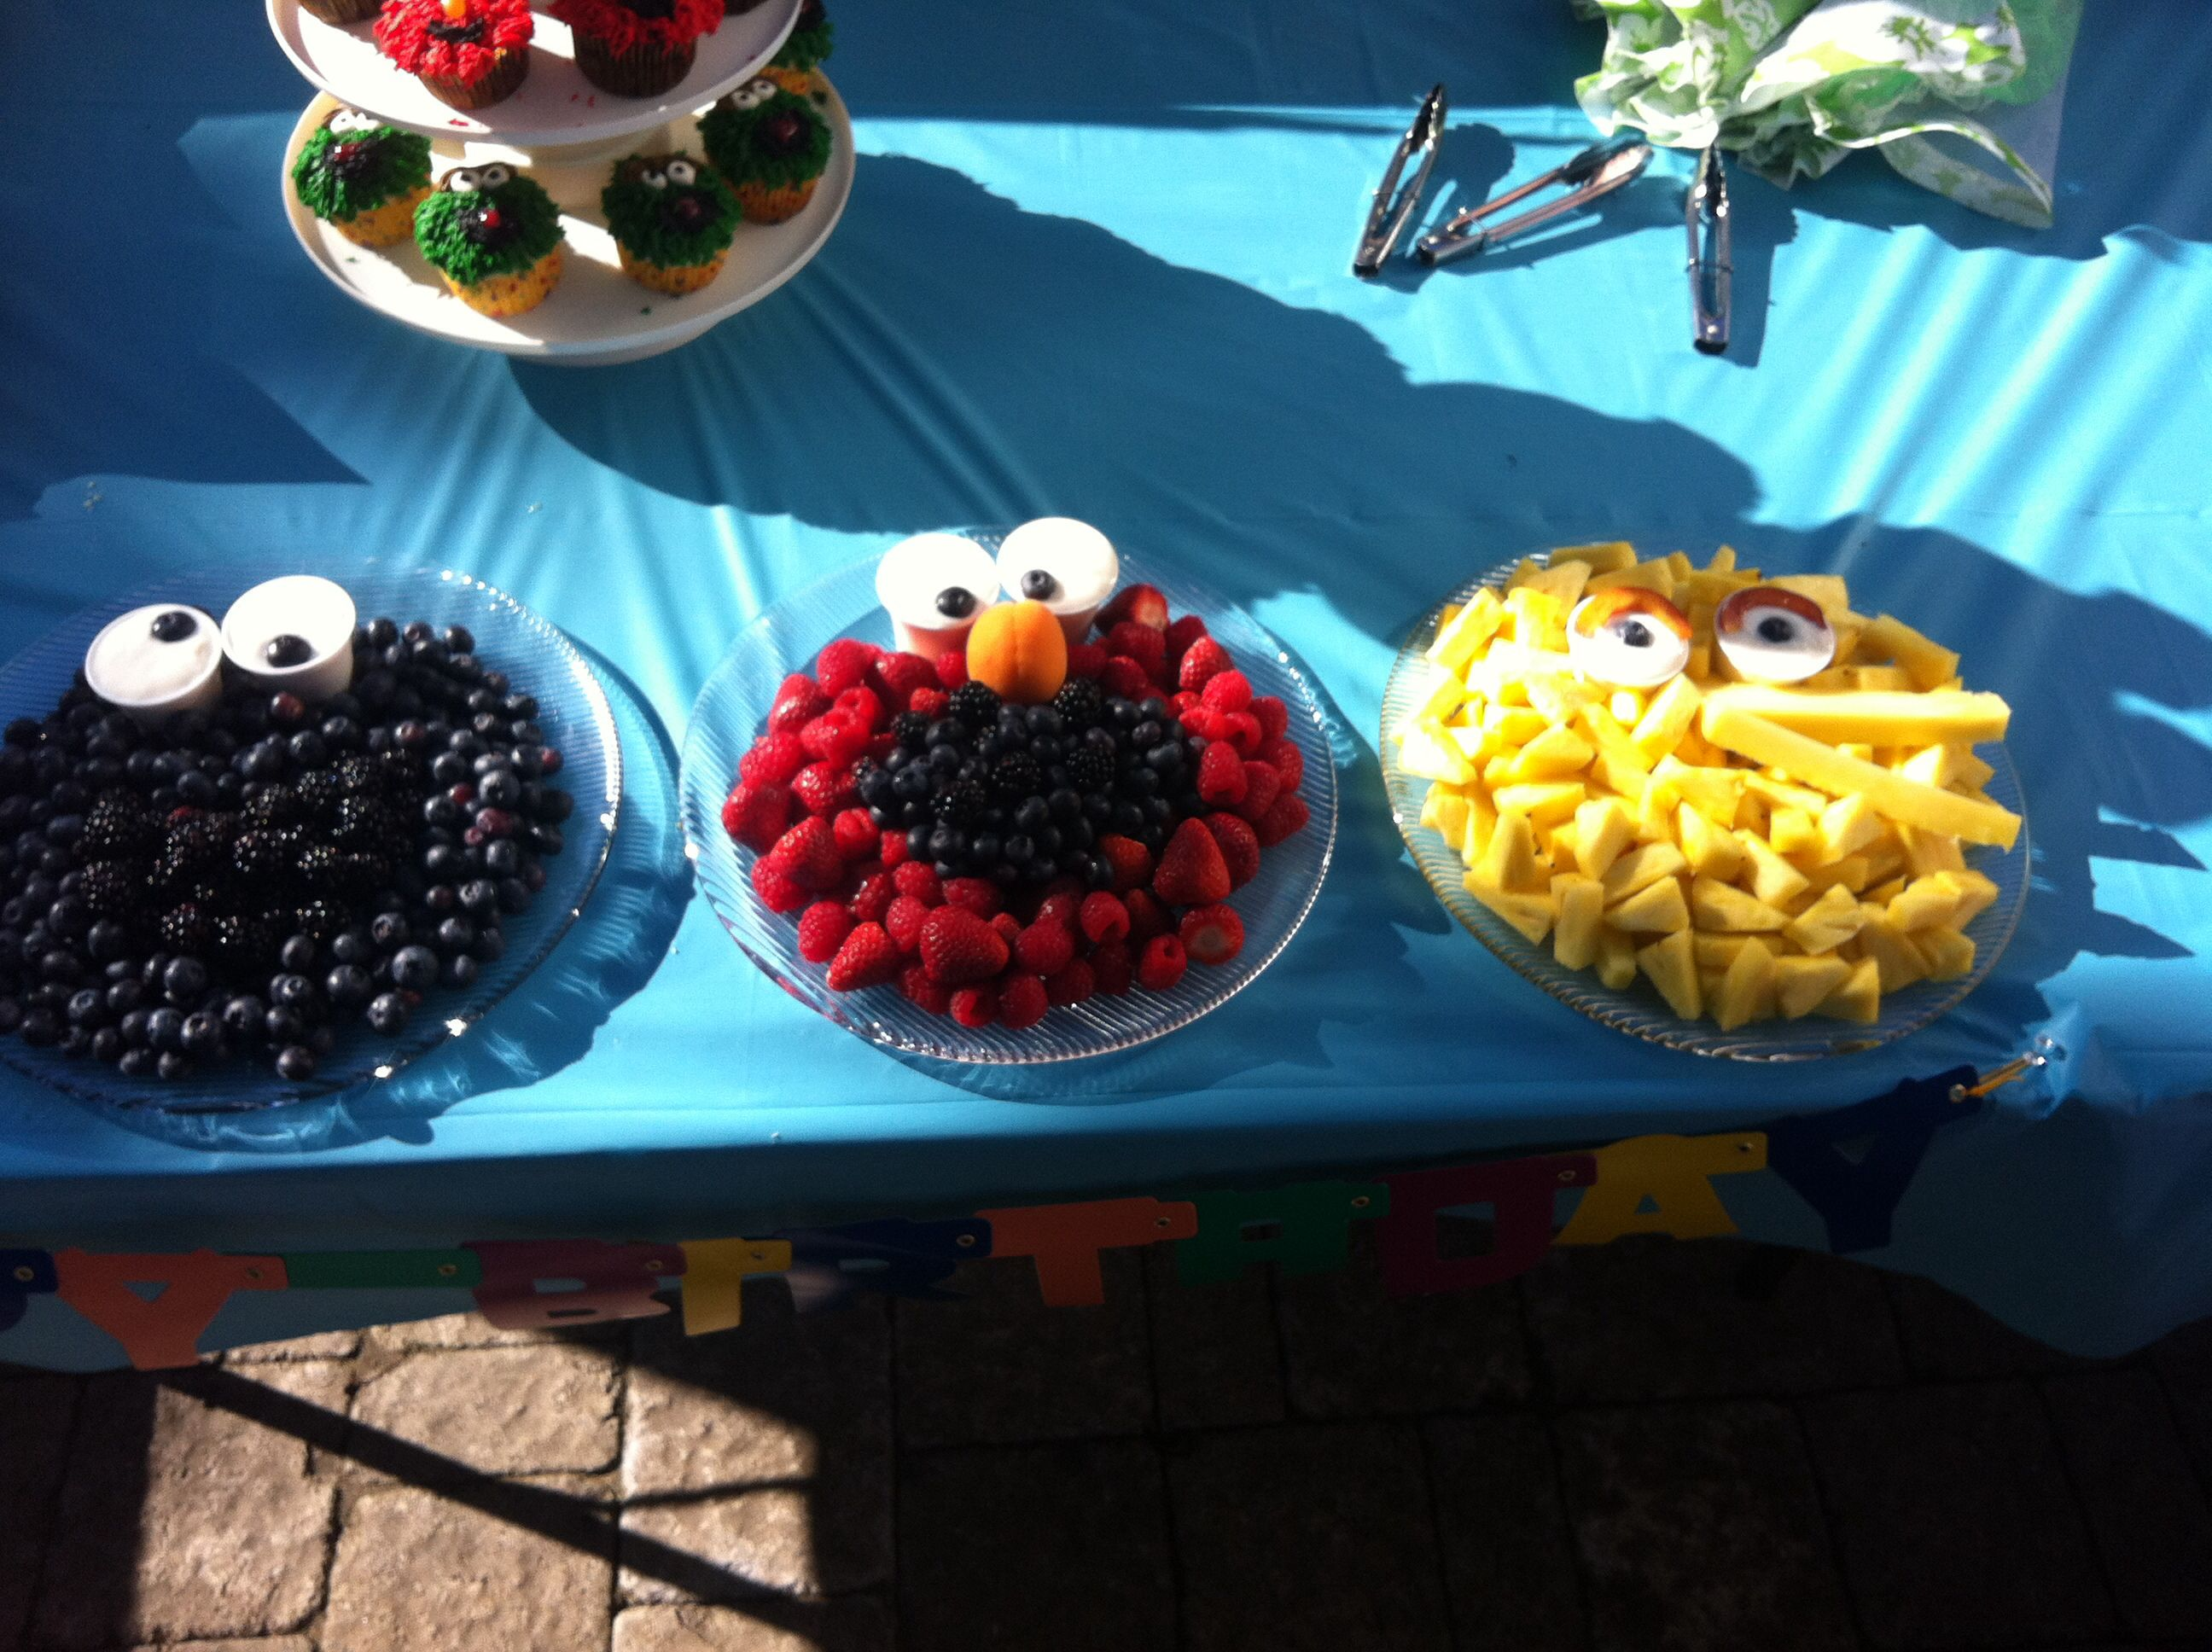 Sesame Street fruit plates - blueberries, raspberries, strawberries, blackberries and pineapple. And yogurt dip for the eyes.